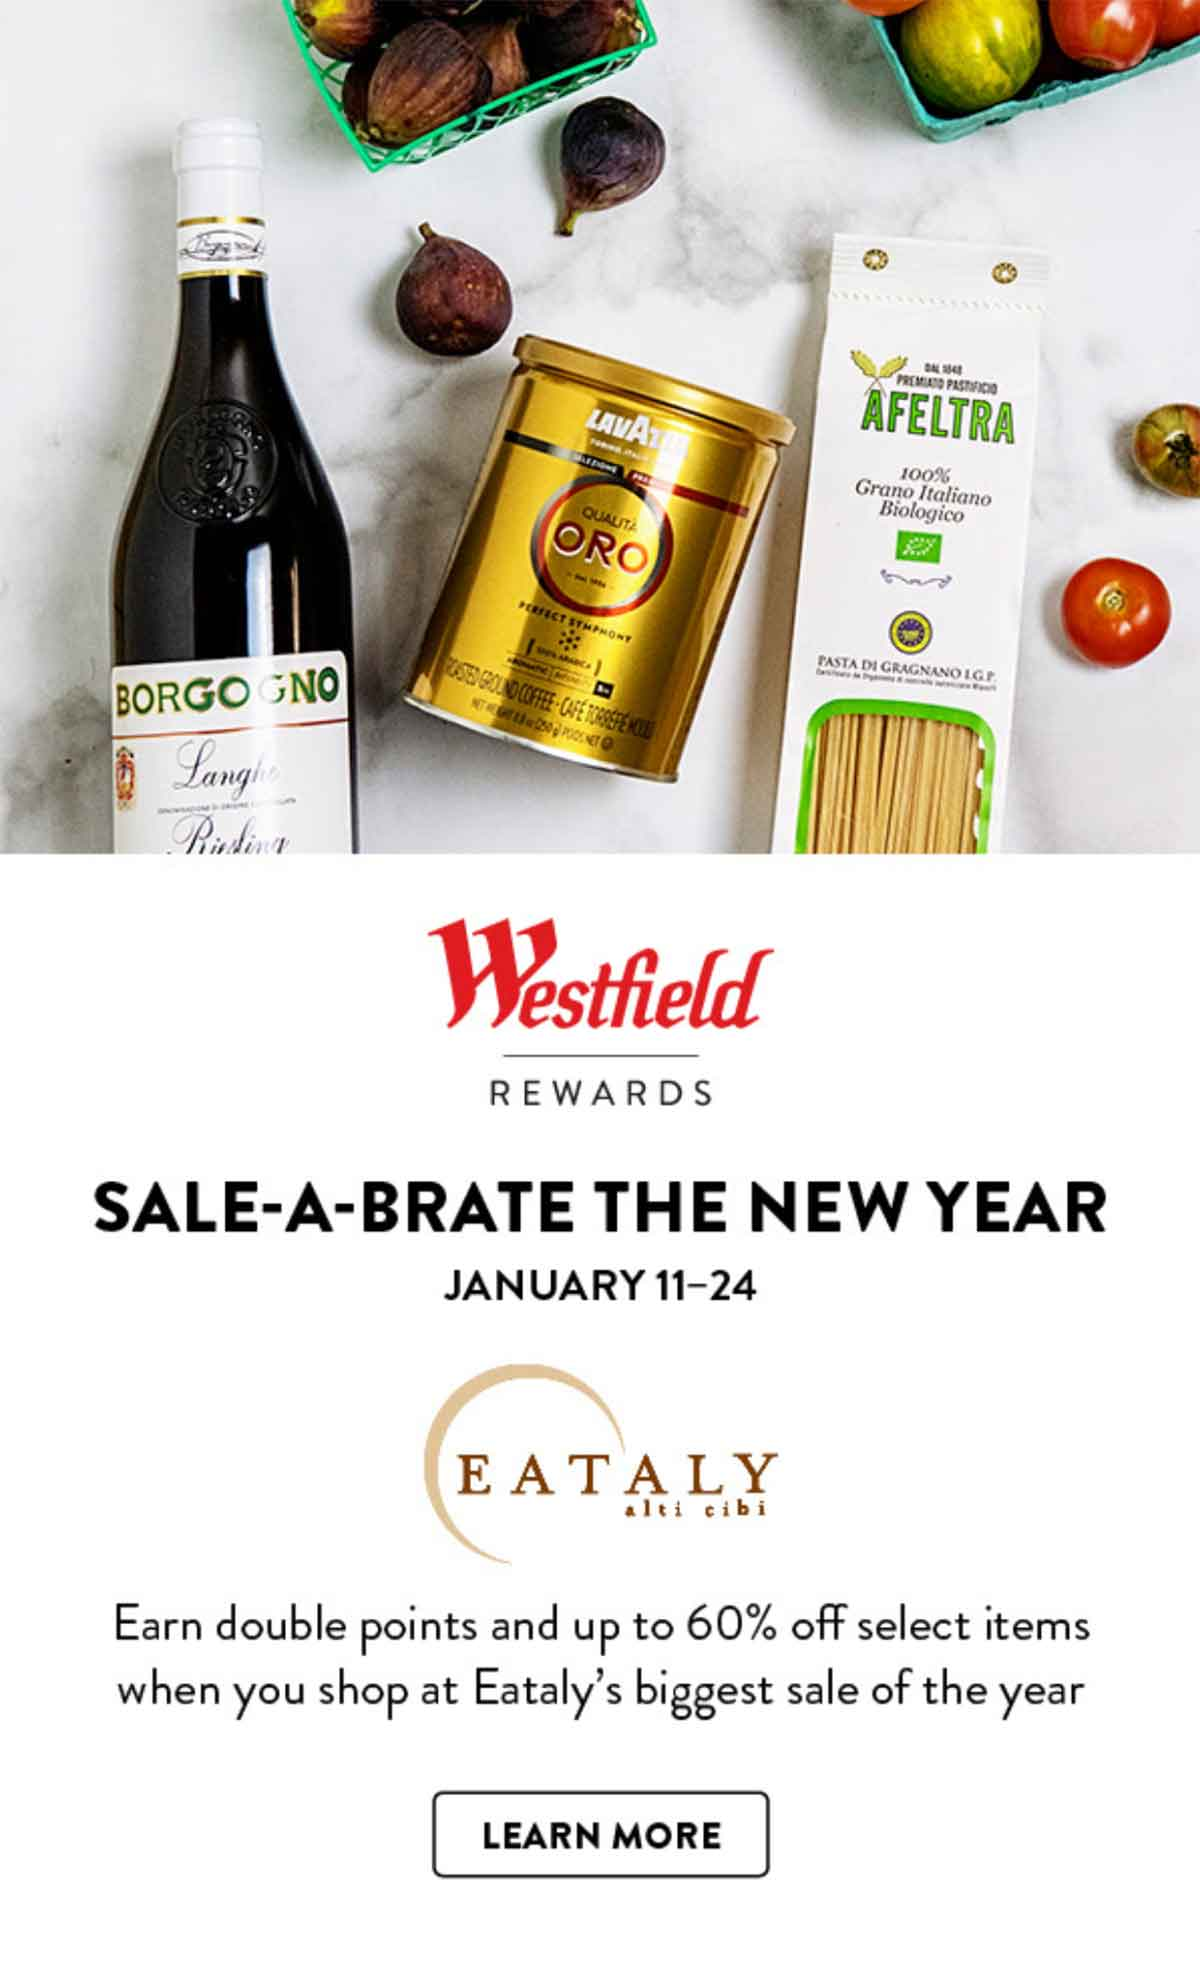 Westfield Sale-a-brate the new year email